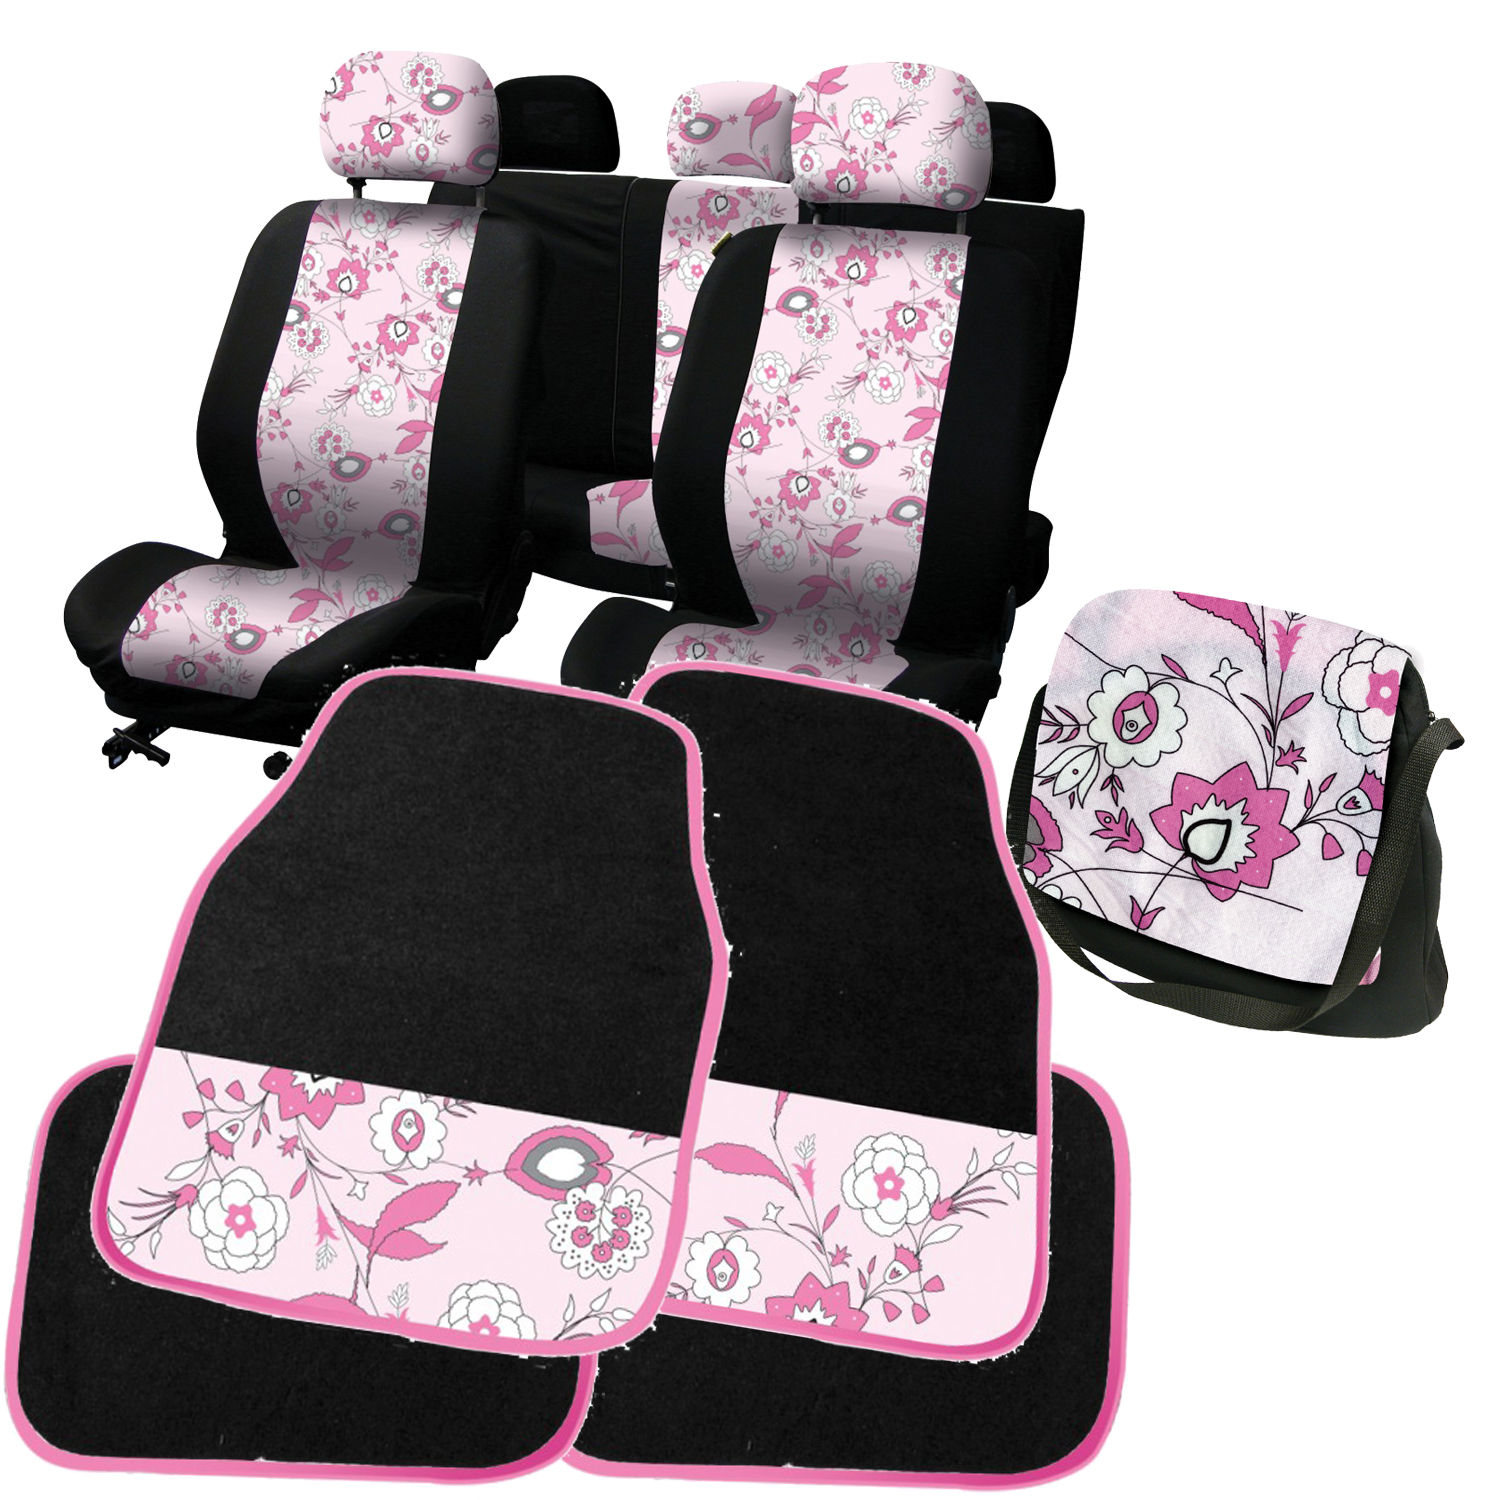 carpoint pink flower car accessory set seat covers floor mats girls car gift. Black Bedroom Furniture Sets. Home Design Ideas